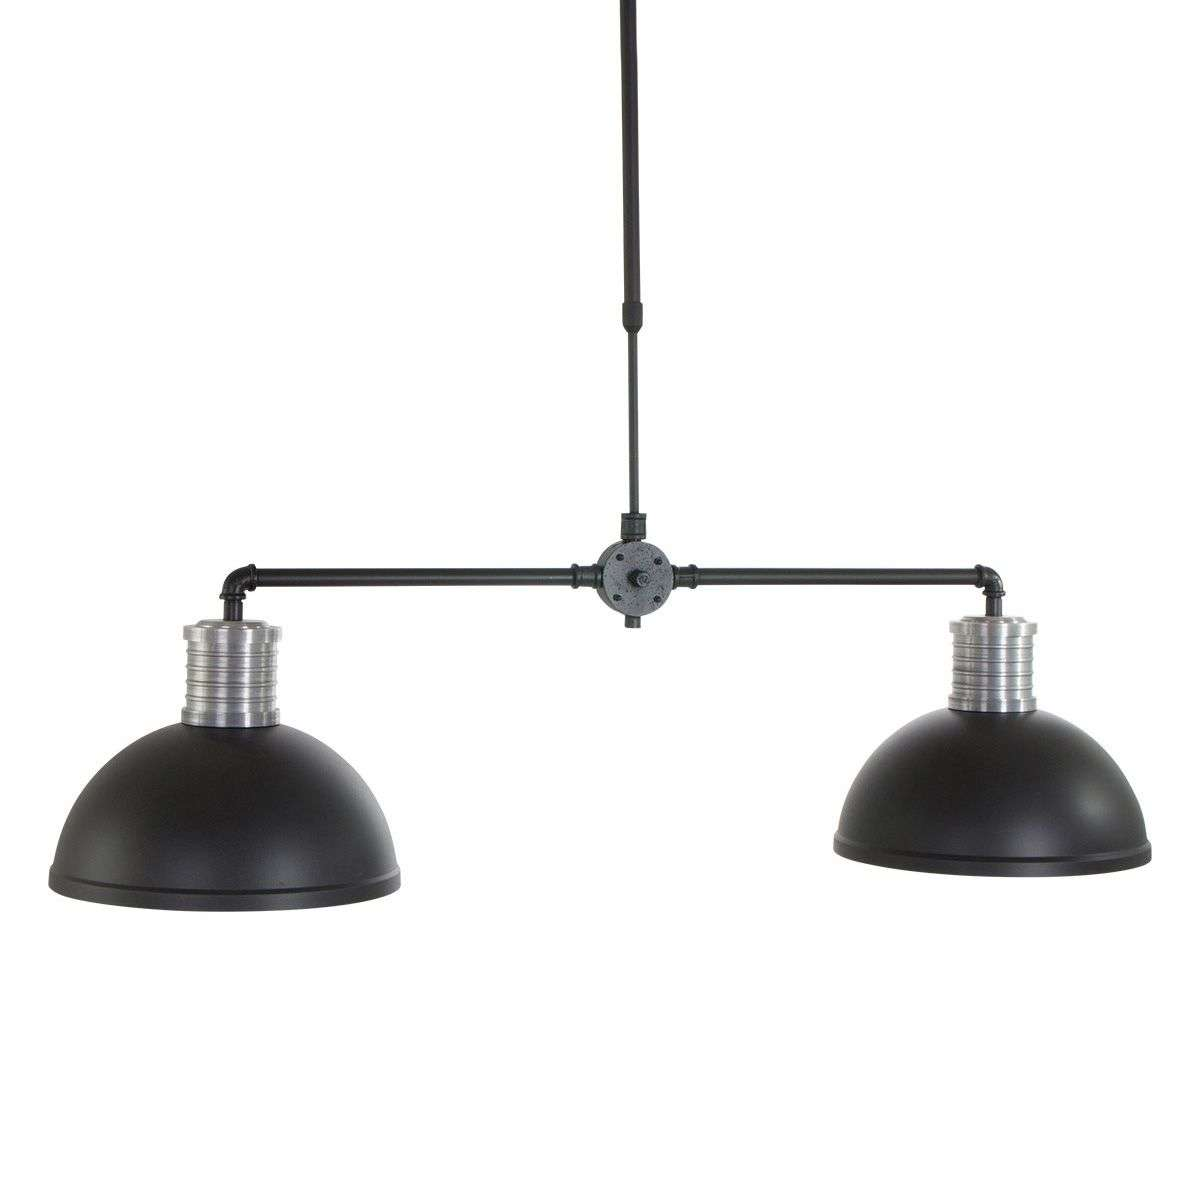 Two bulb industrial pendant light brooklyn for Industrial bulb pendant